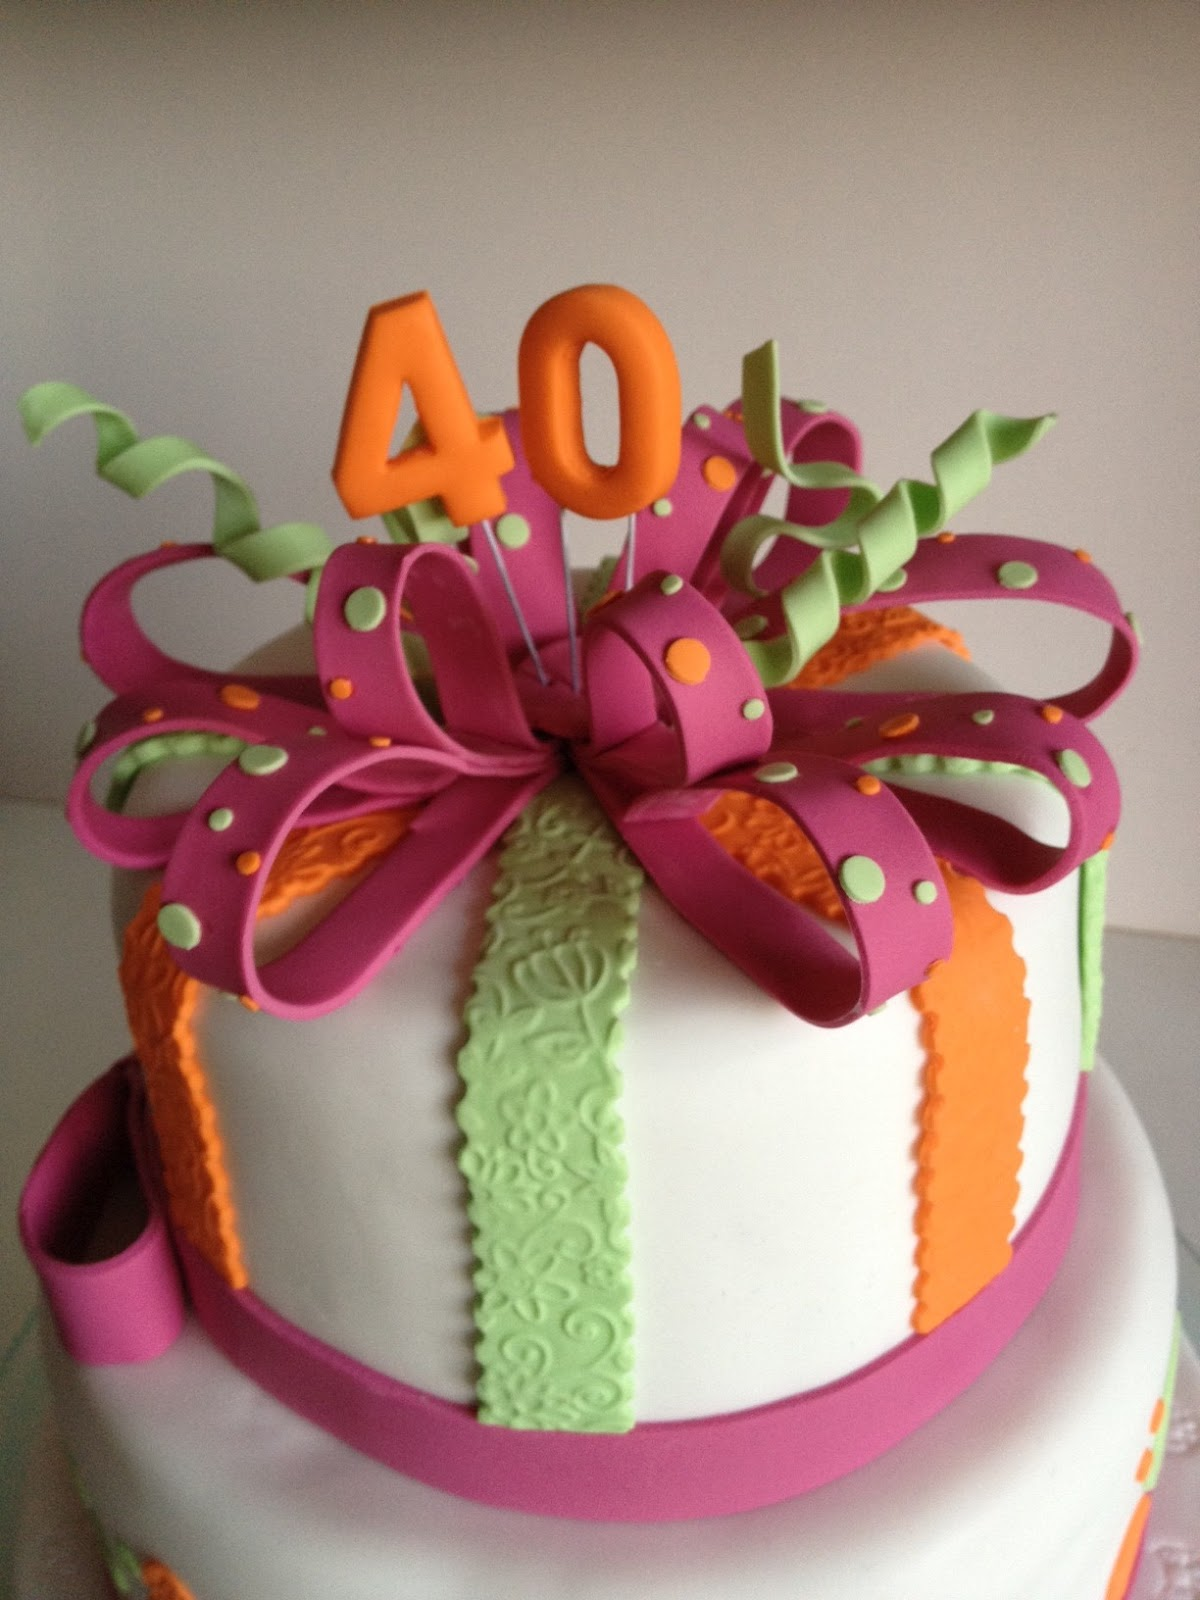 Cake Story By Jenty Sally Amp Katharyn 40th Birthday